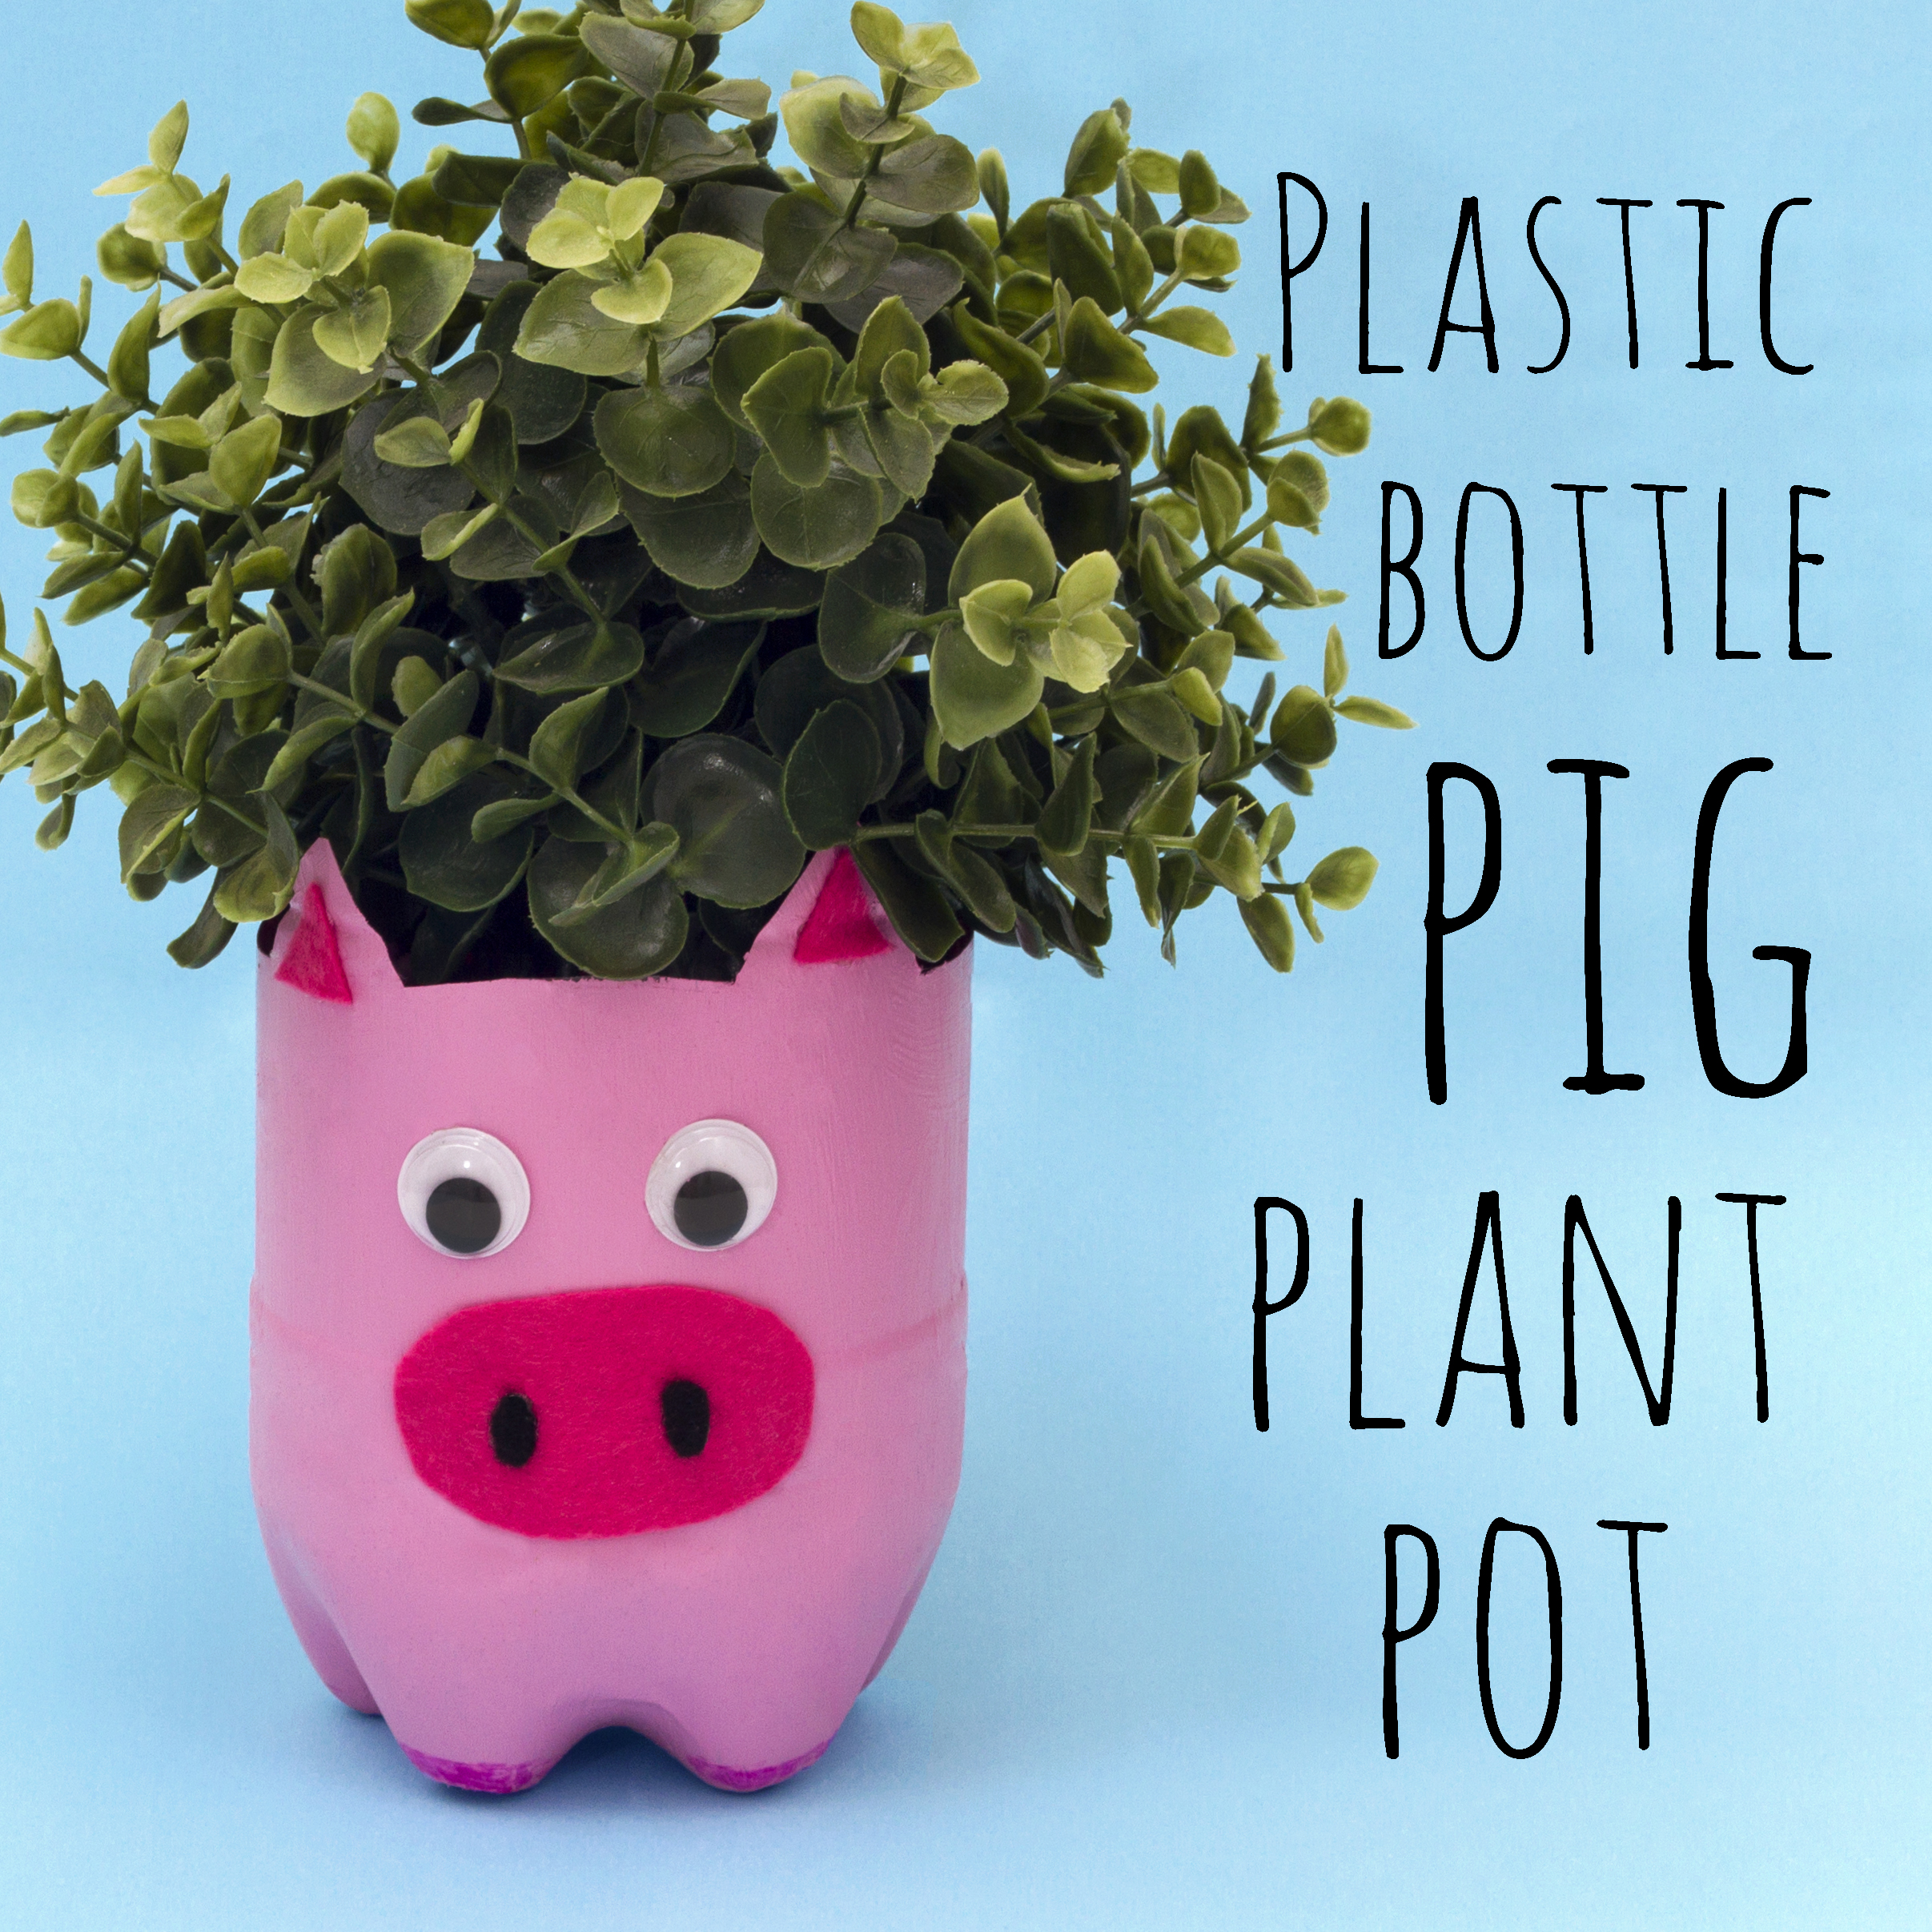 Make this cute pig plant pot out of a plastic bottle! It's such a simple craft for kids to make, you could even make all the farmyard animals!  There's a video at the end of this post showing you how I made this DIY plant pot!